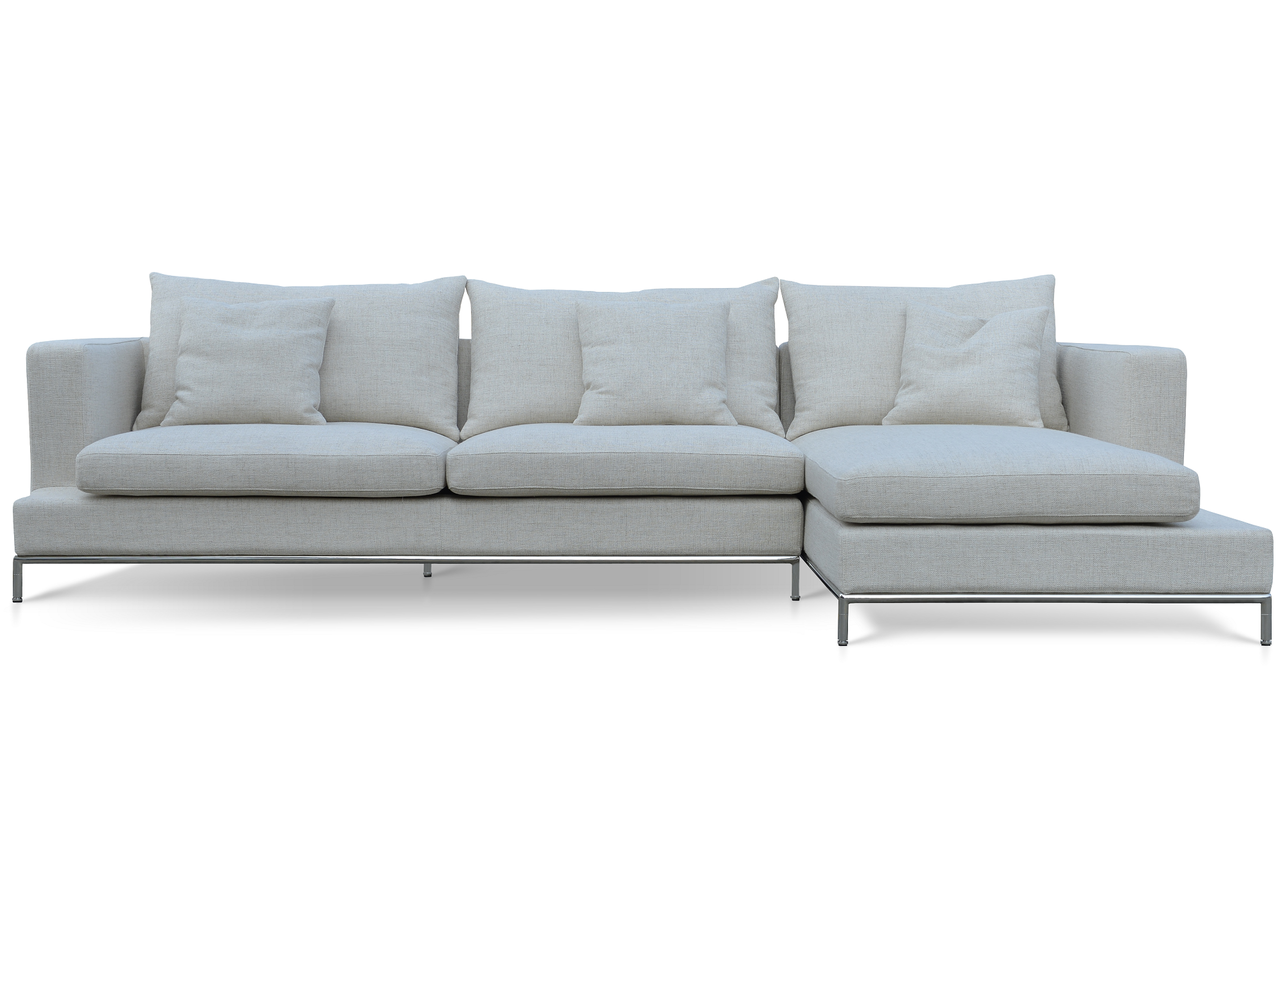 soho concept simena sectional sofa  zin home - soho concept simena sectional sofa cream tweed